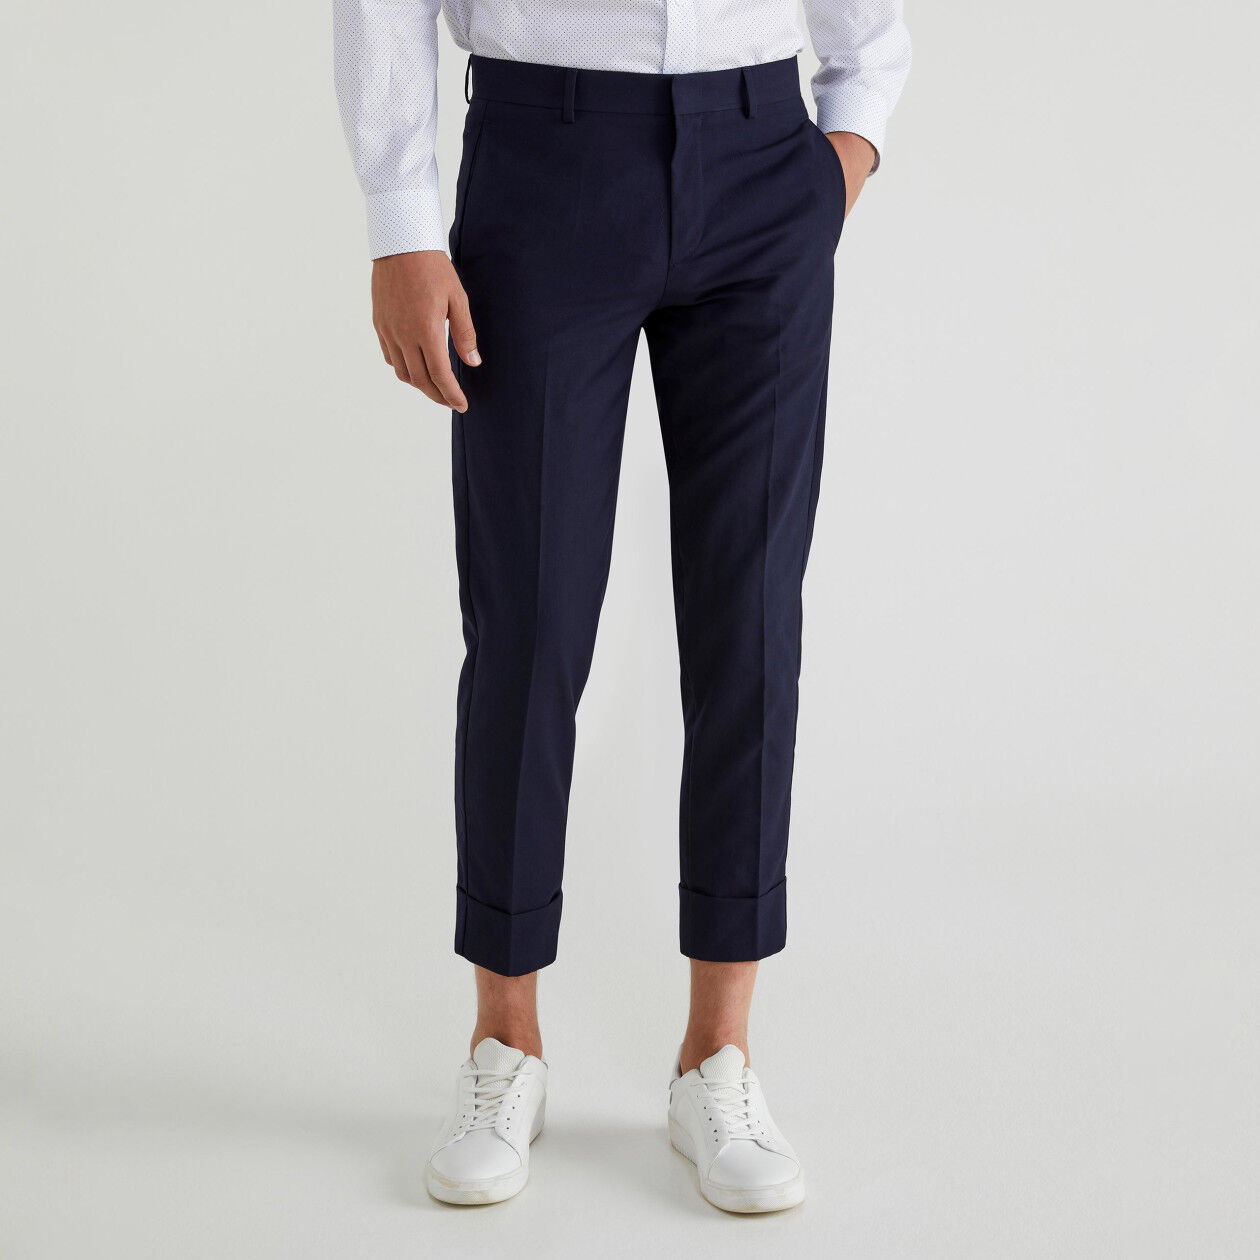 Chinos with crease and cuffs